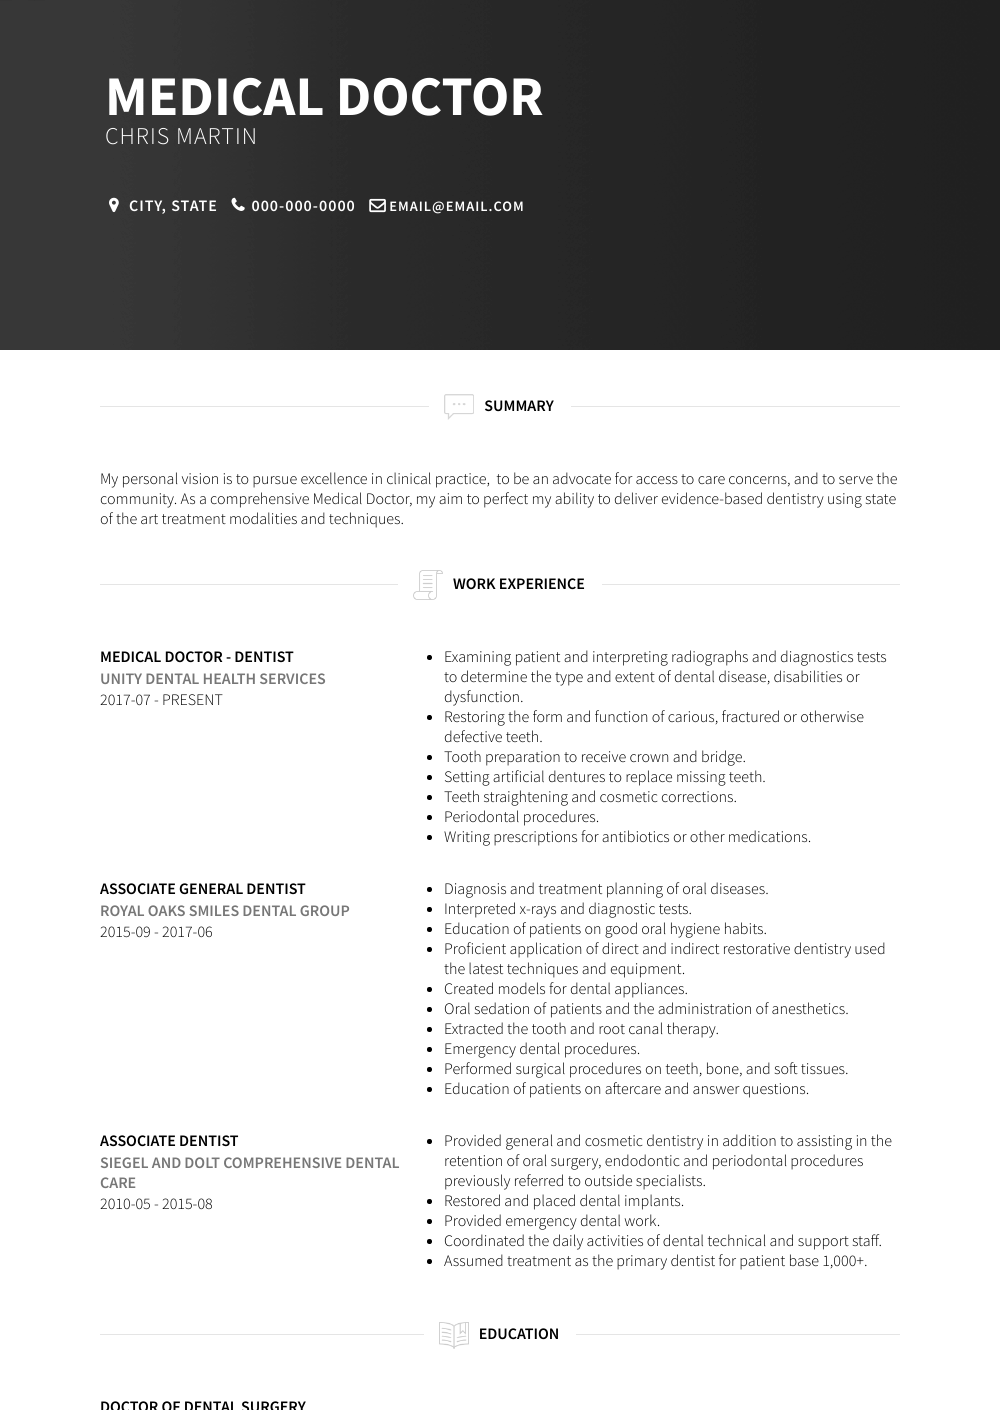 Medical Doctor Resume Sample and Template